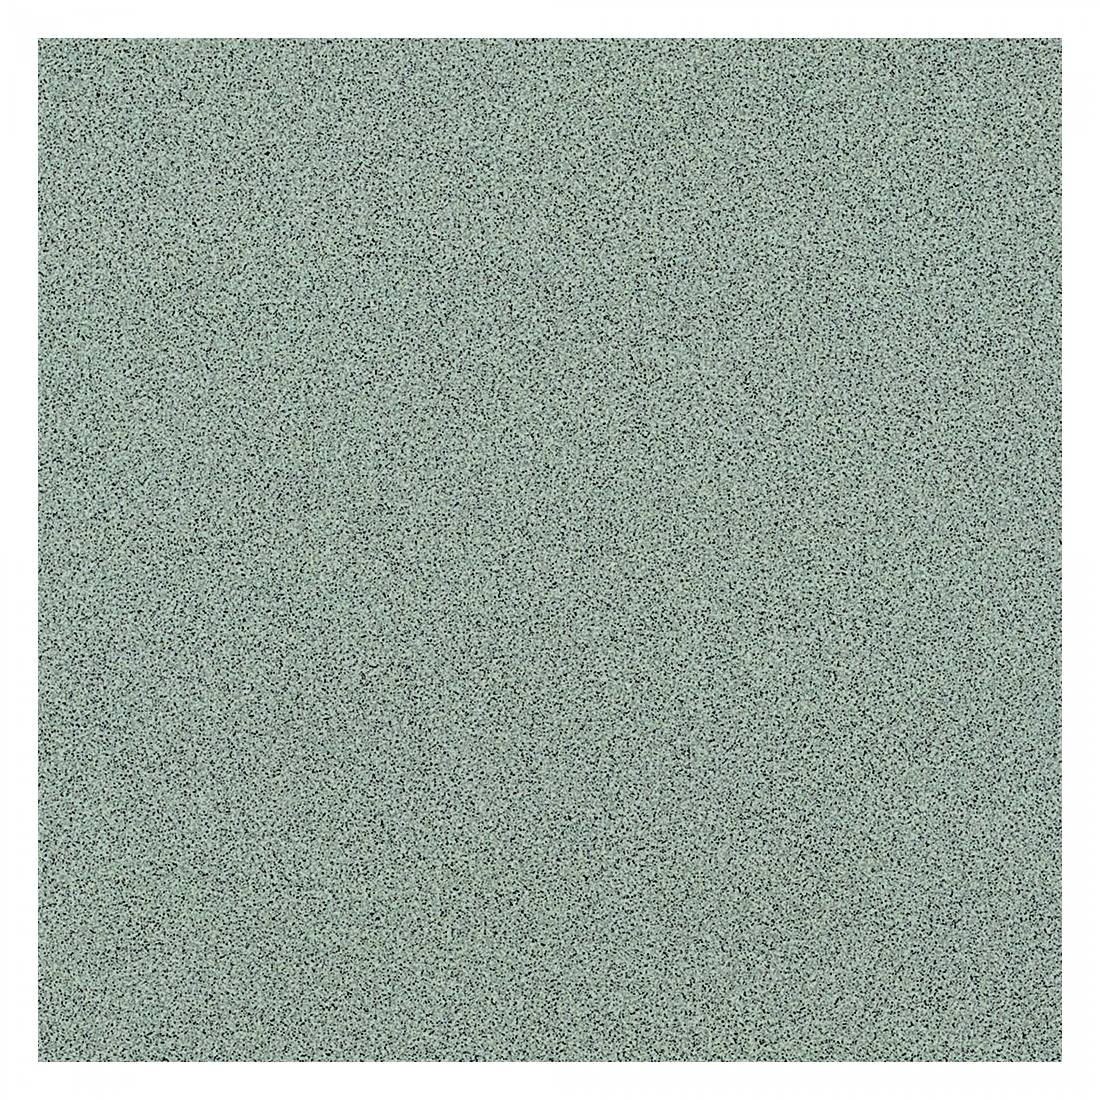 Elena 60x60 Grey Polished 1